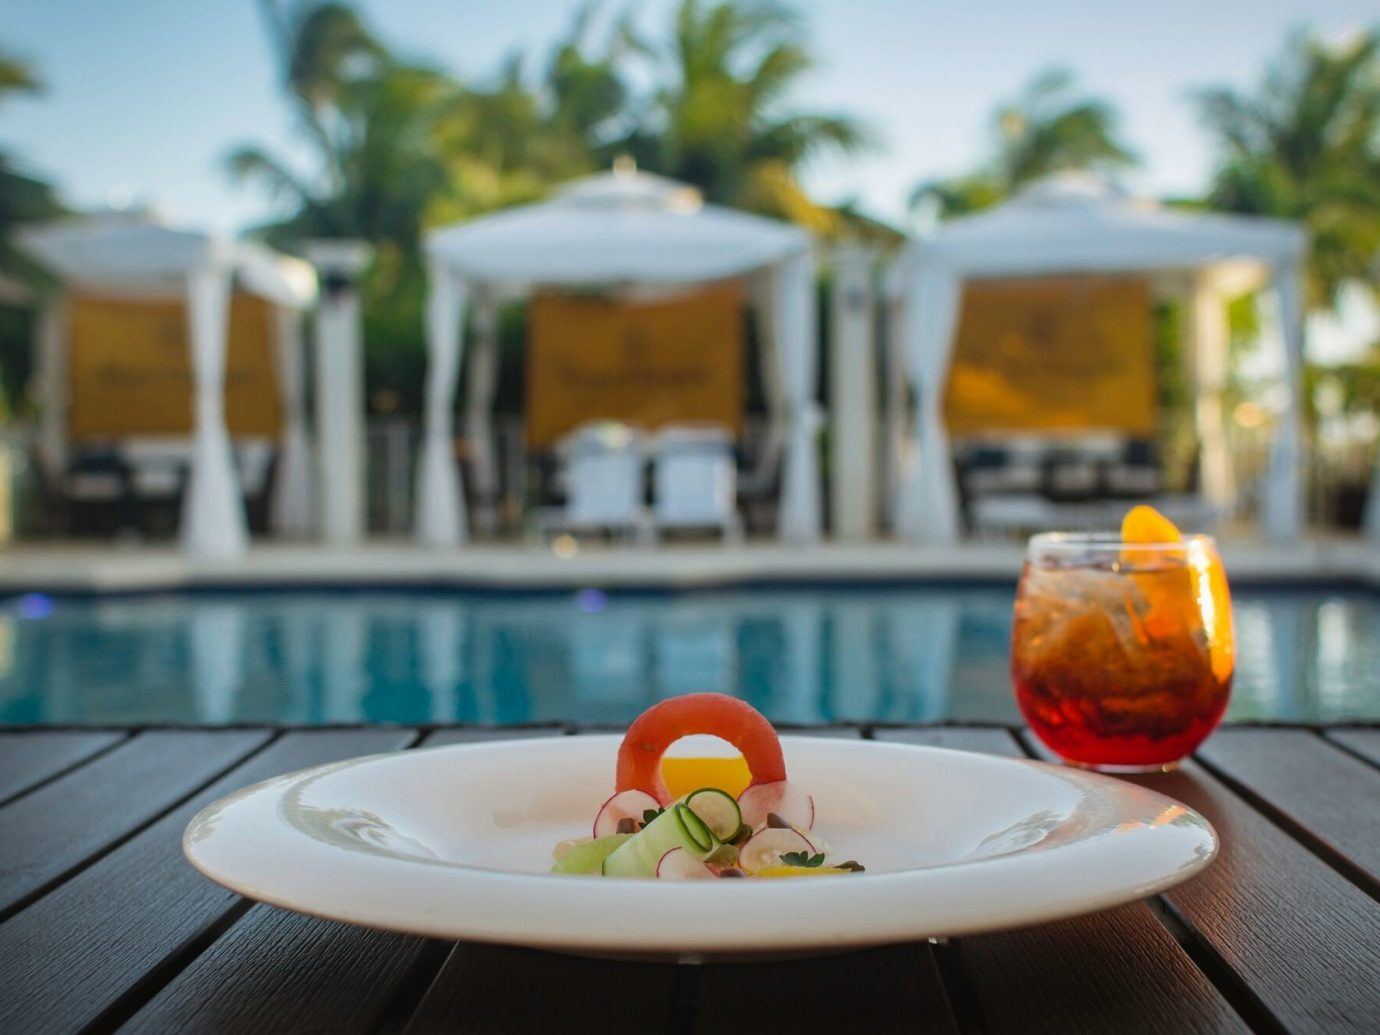 Trip Ideas table food meal restaurant vacation dish estate swimming pool